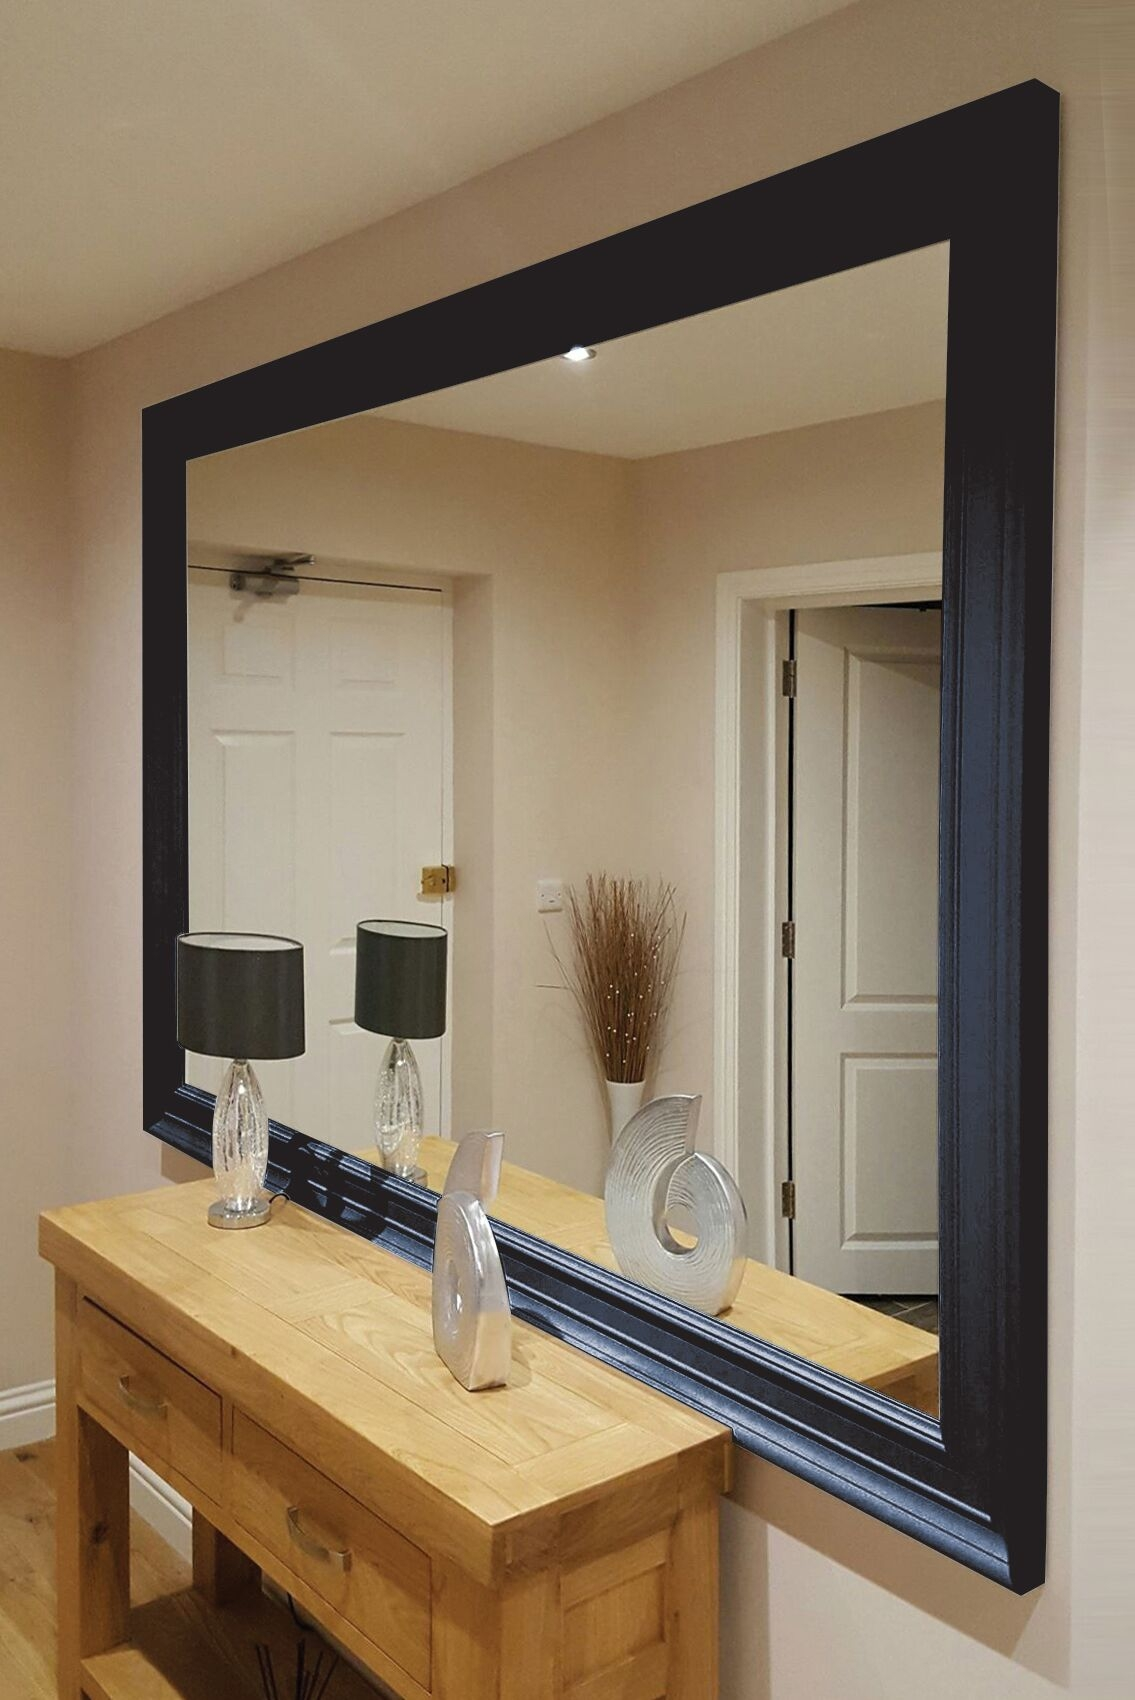 Reno Black Extra Large Compact Mirror Hampshire Furniture For Extra Large Black Mirror (Image 13 of 15)